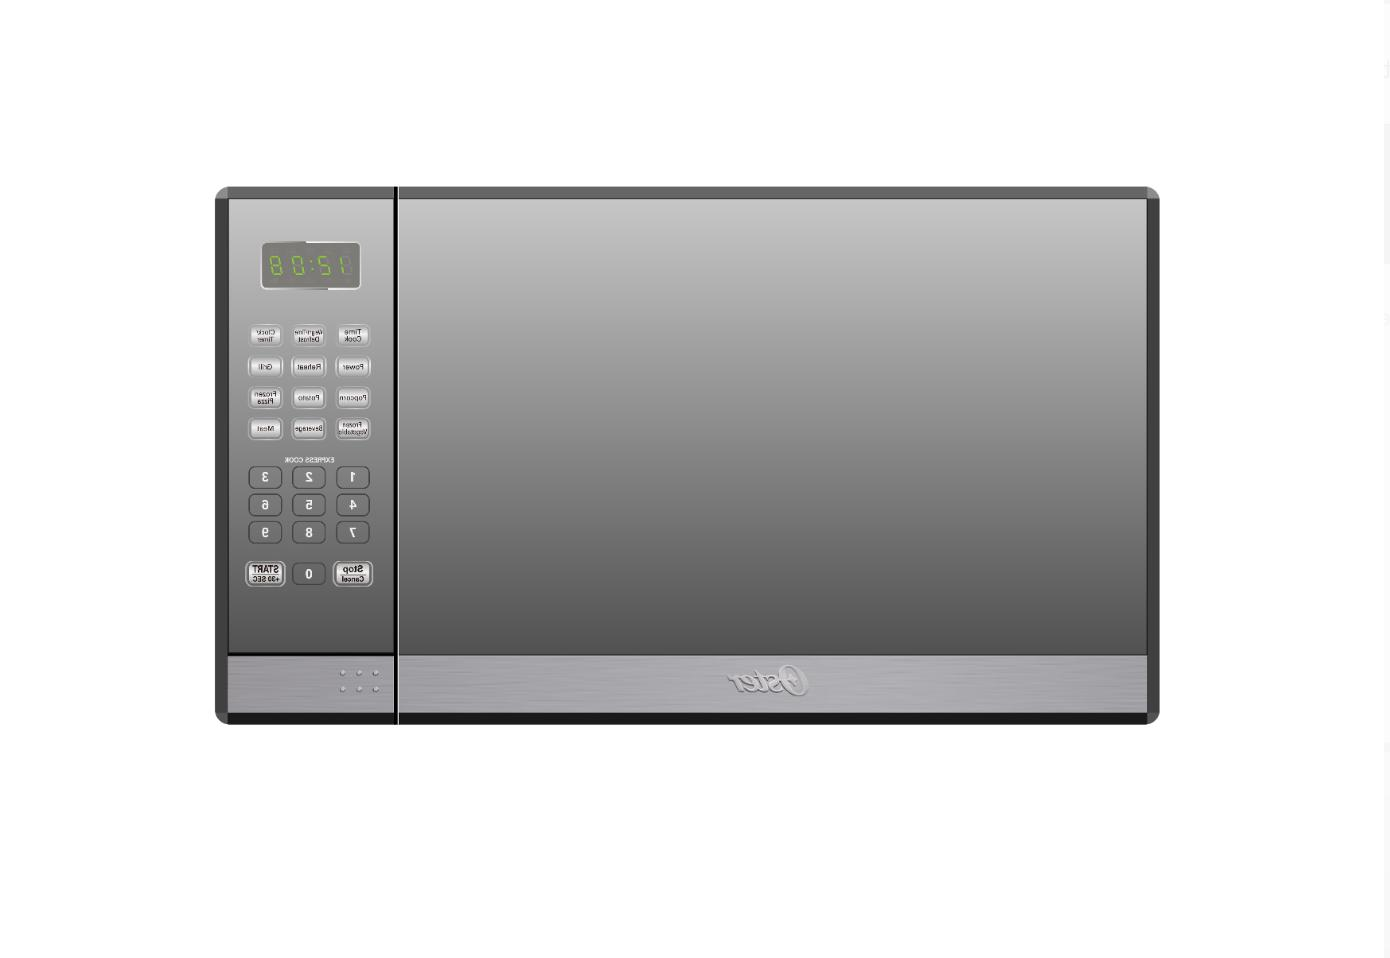 Oster 1.3 Steel with Mirror Finish Microwave Oven